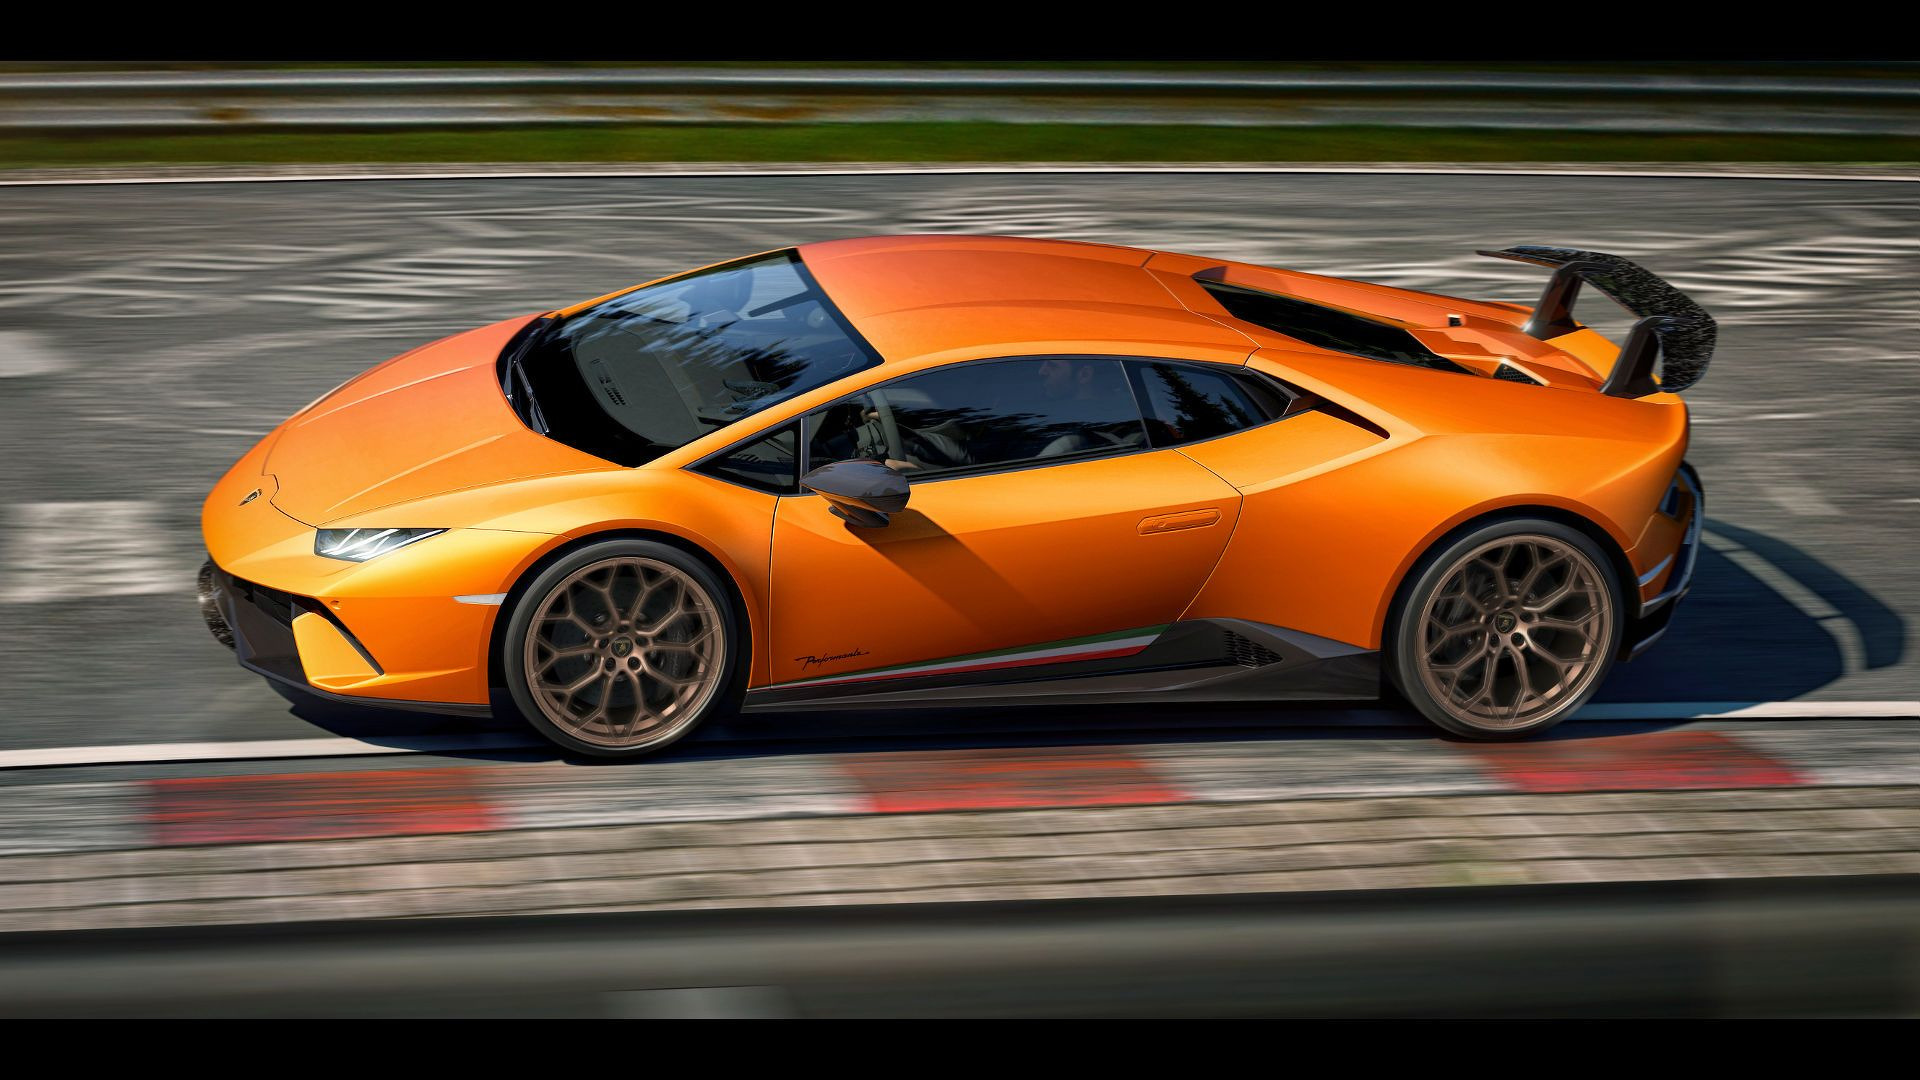 Lamborghini Huracán Performante News and Reviews